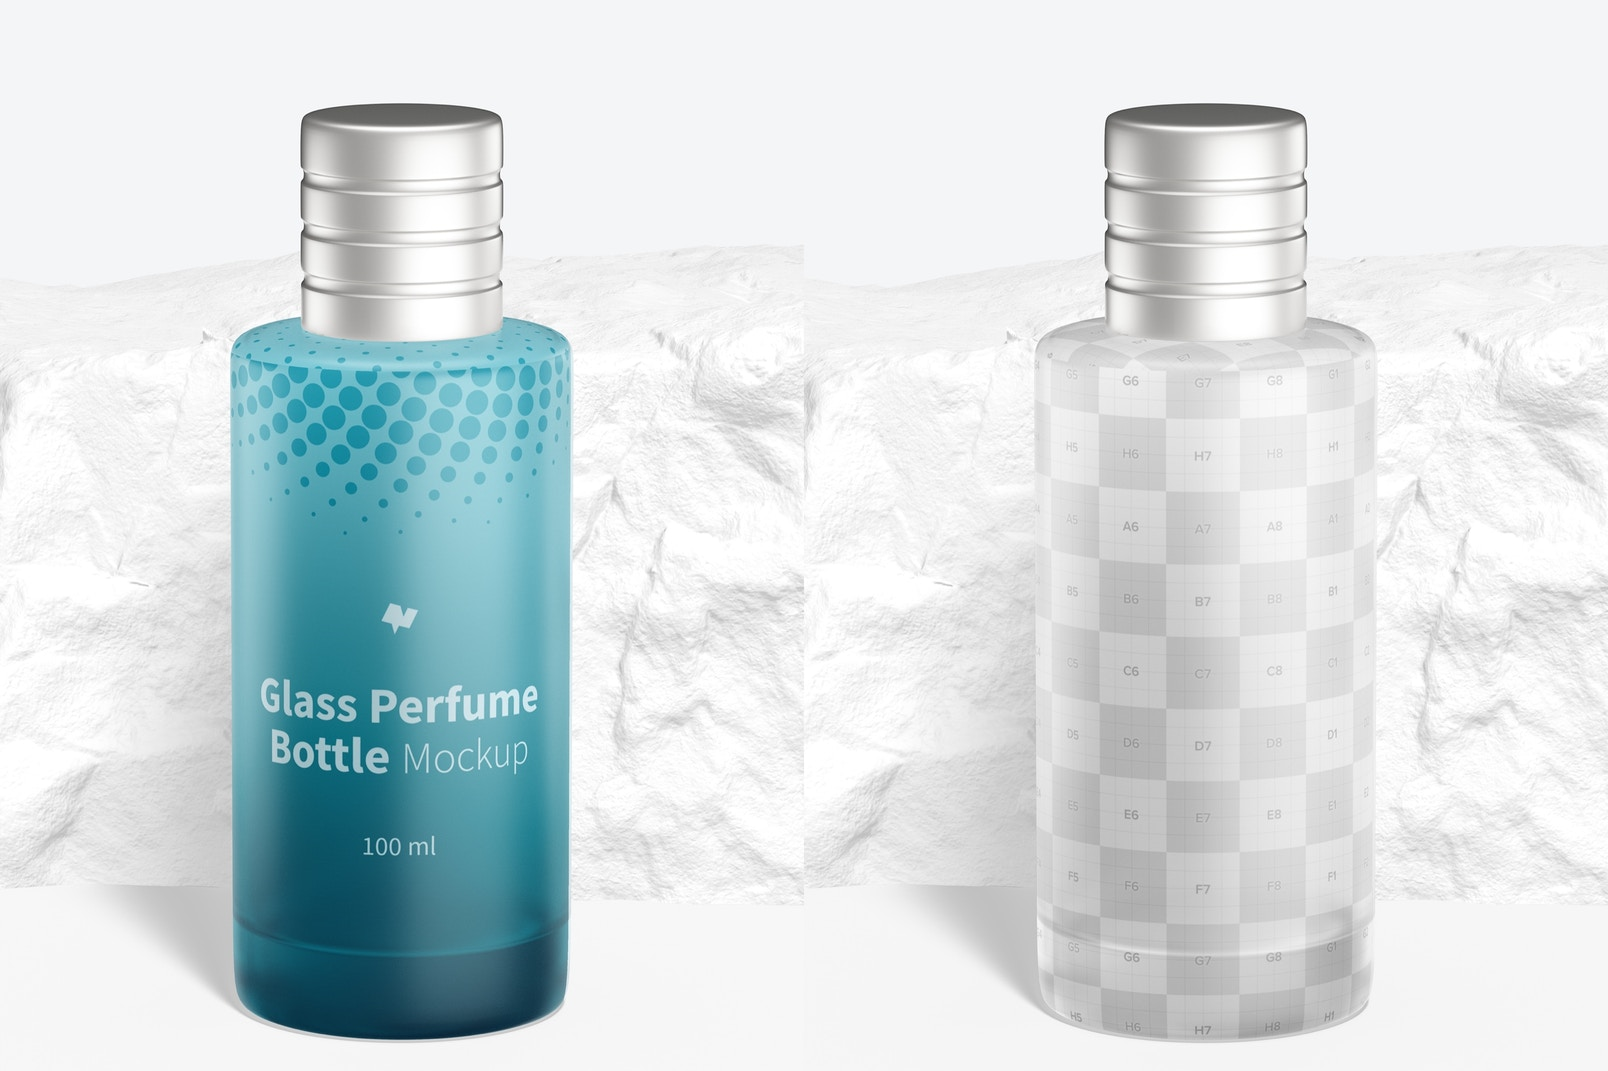 100 ml Glass Perfume Bottle Mockup, Front View